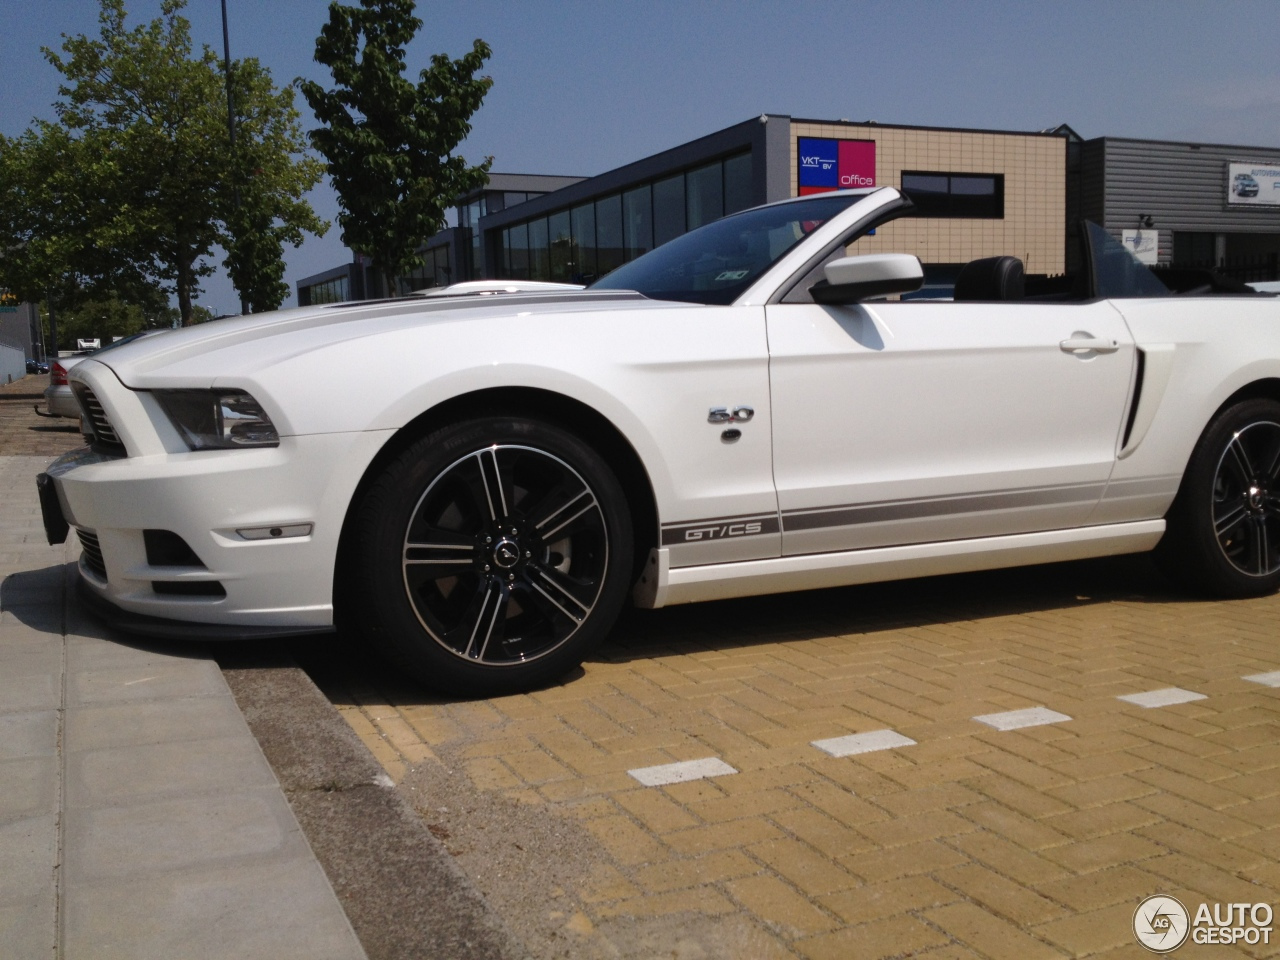 ford mustang gt california special convertible 2012 5 july 2013 autogespot. Black Bedroom Furniture Sets. Home Design Ideas